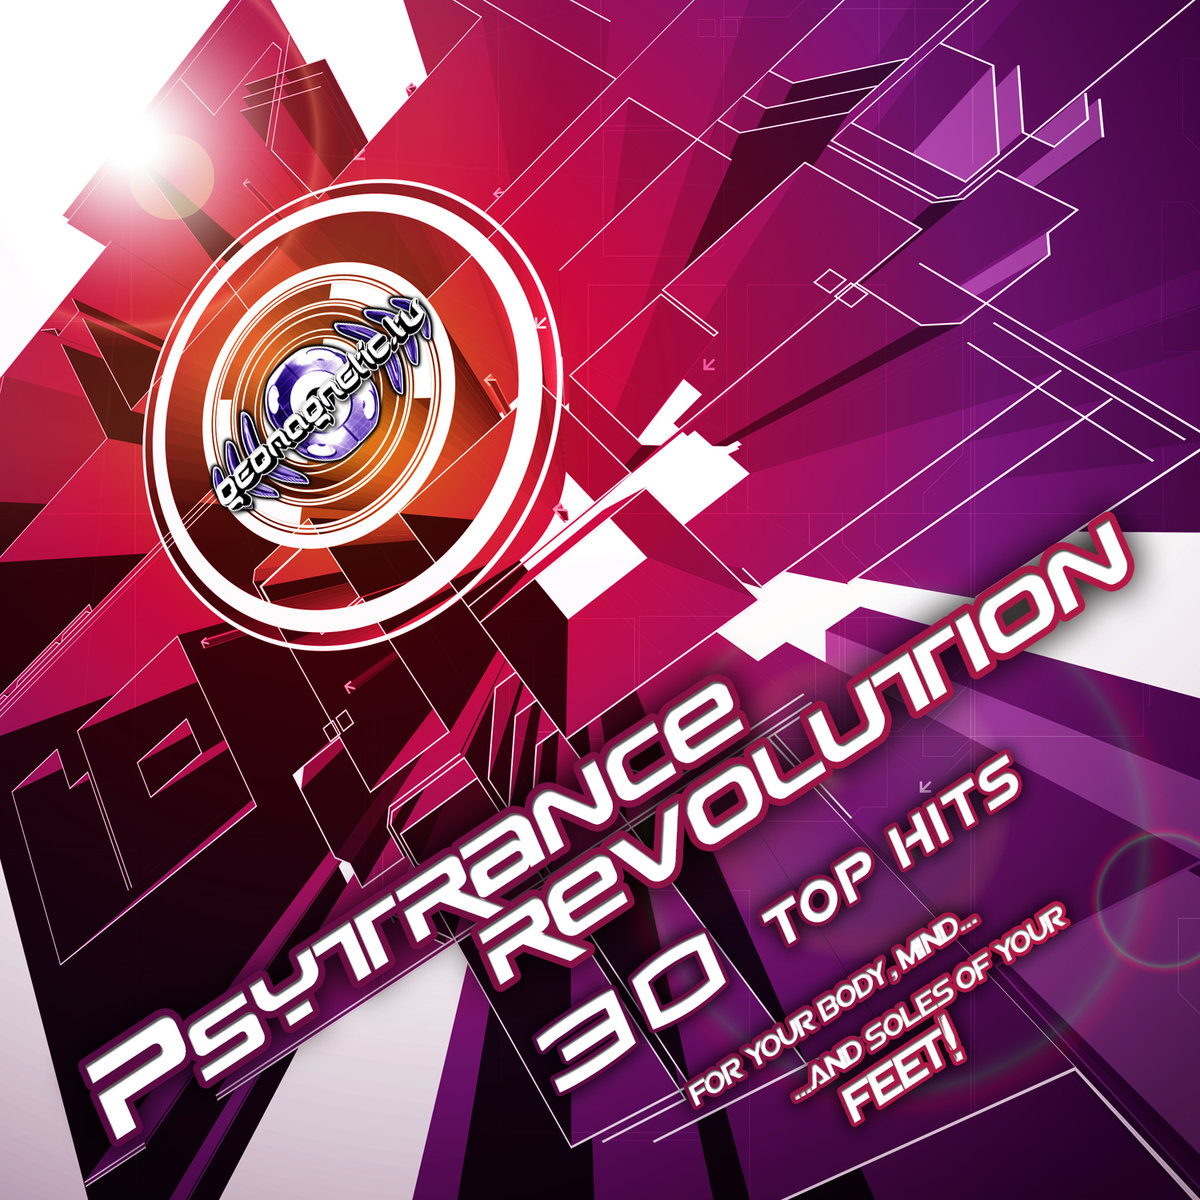 Quazax - Time Slip, Vol.2 @ 'Various Artists - Psytrance Revolution (30 Top Hits)' album (electronic, goa)